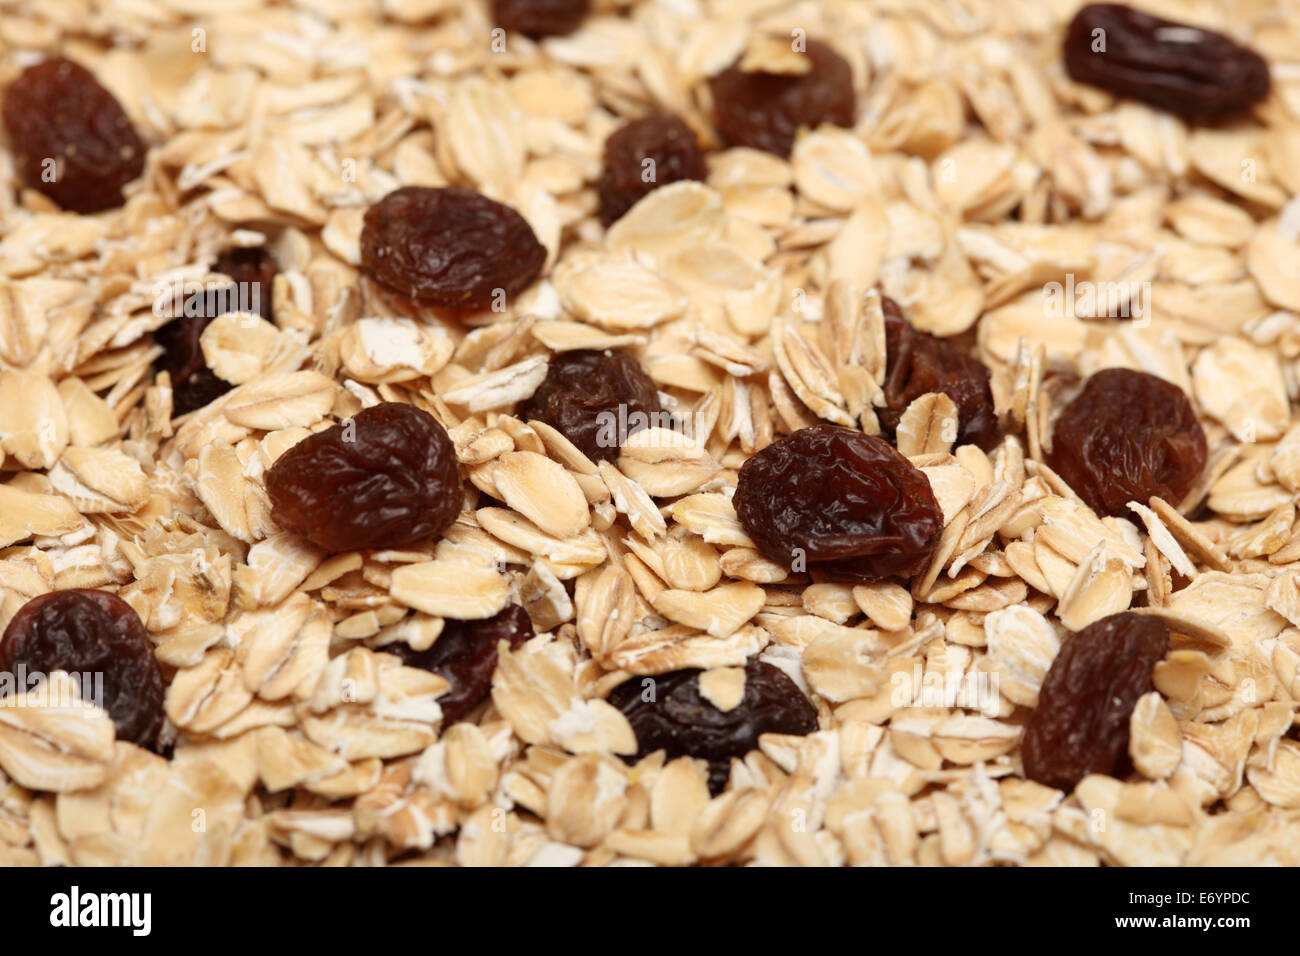 Healthy eating. Oat flakes with raisins. Selective focus. Closeup. - Stock Image